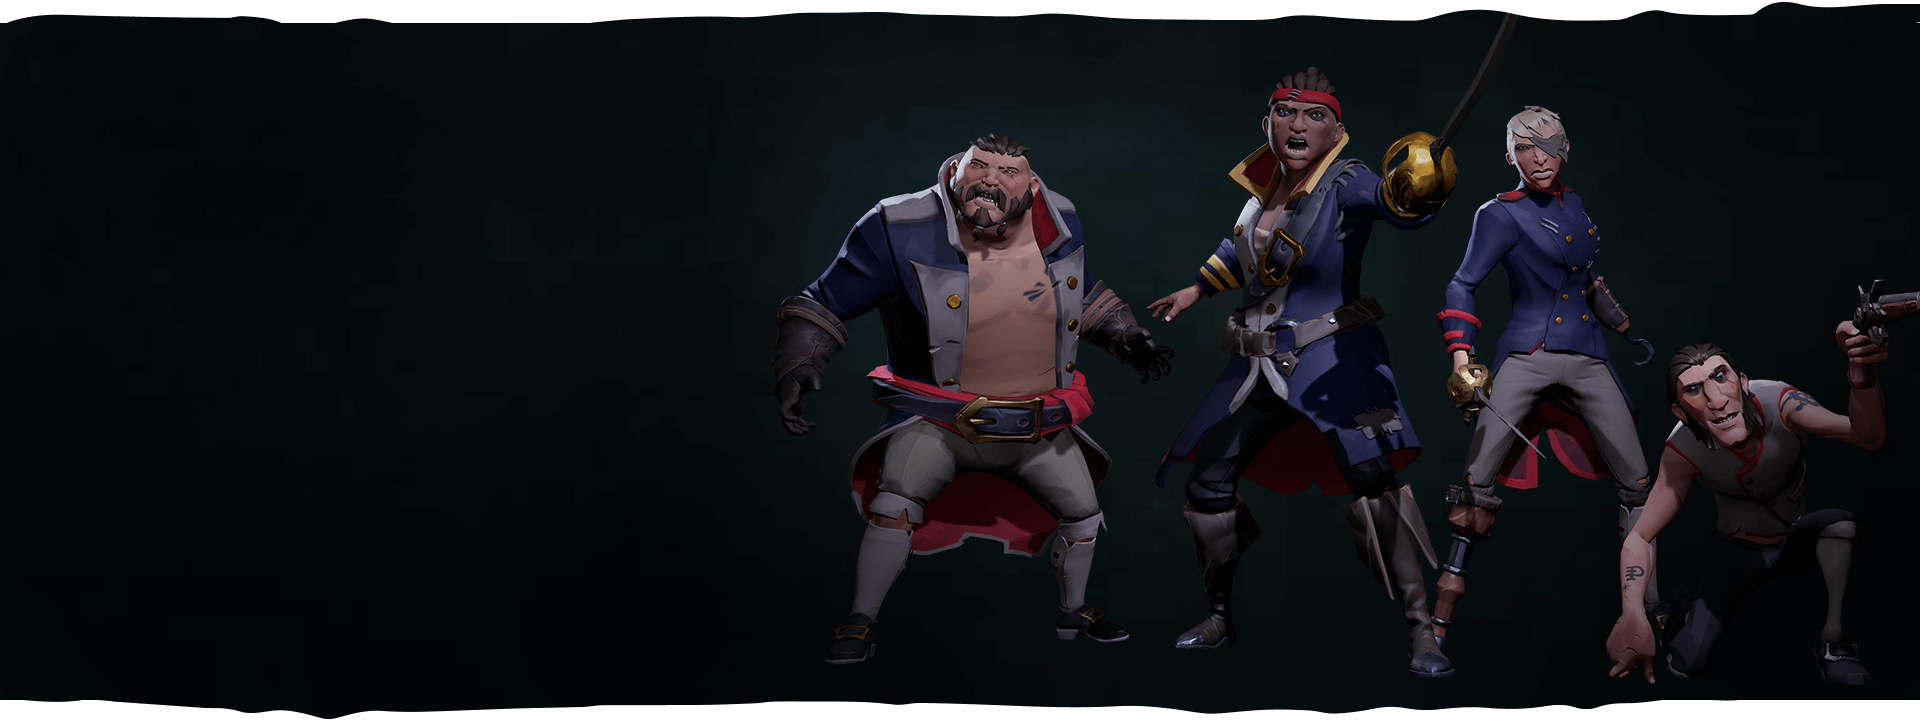 Four Crew Mutineer characters in action pose